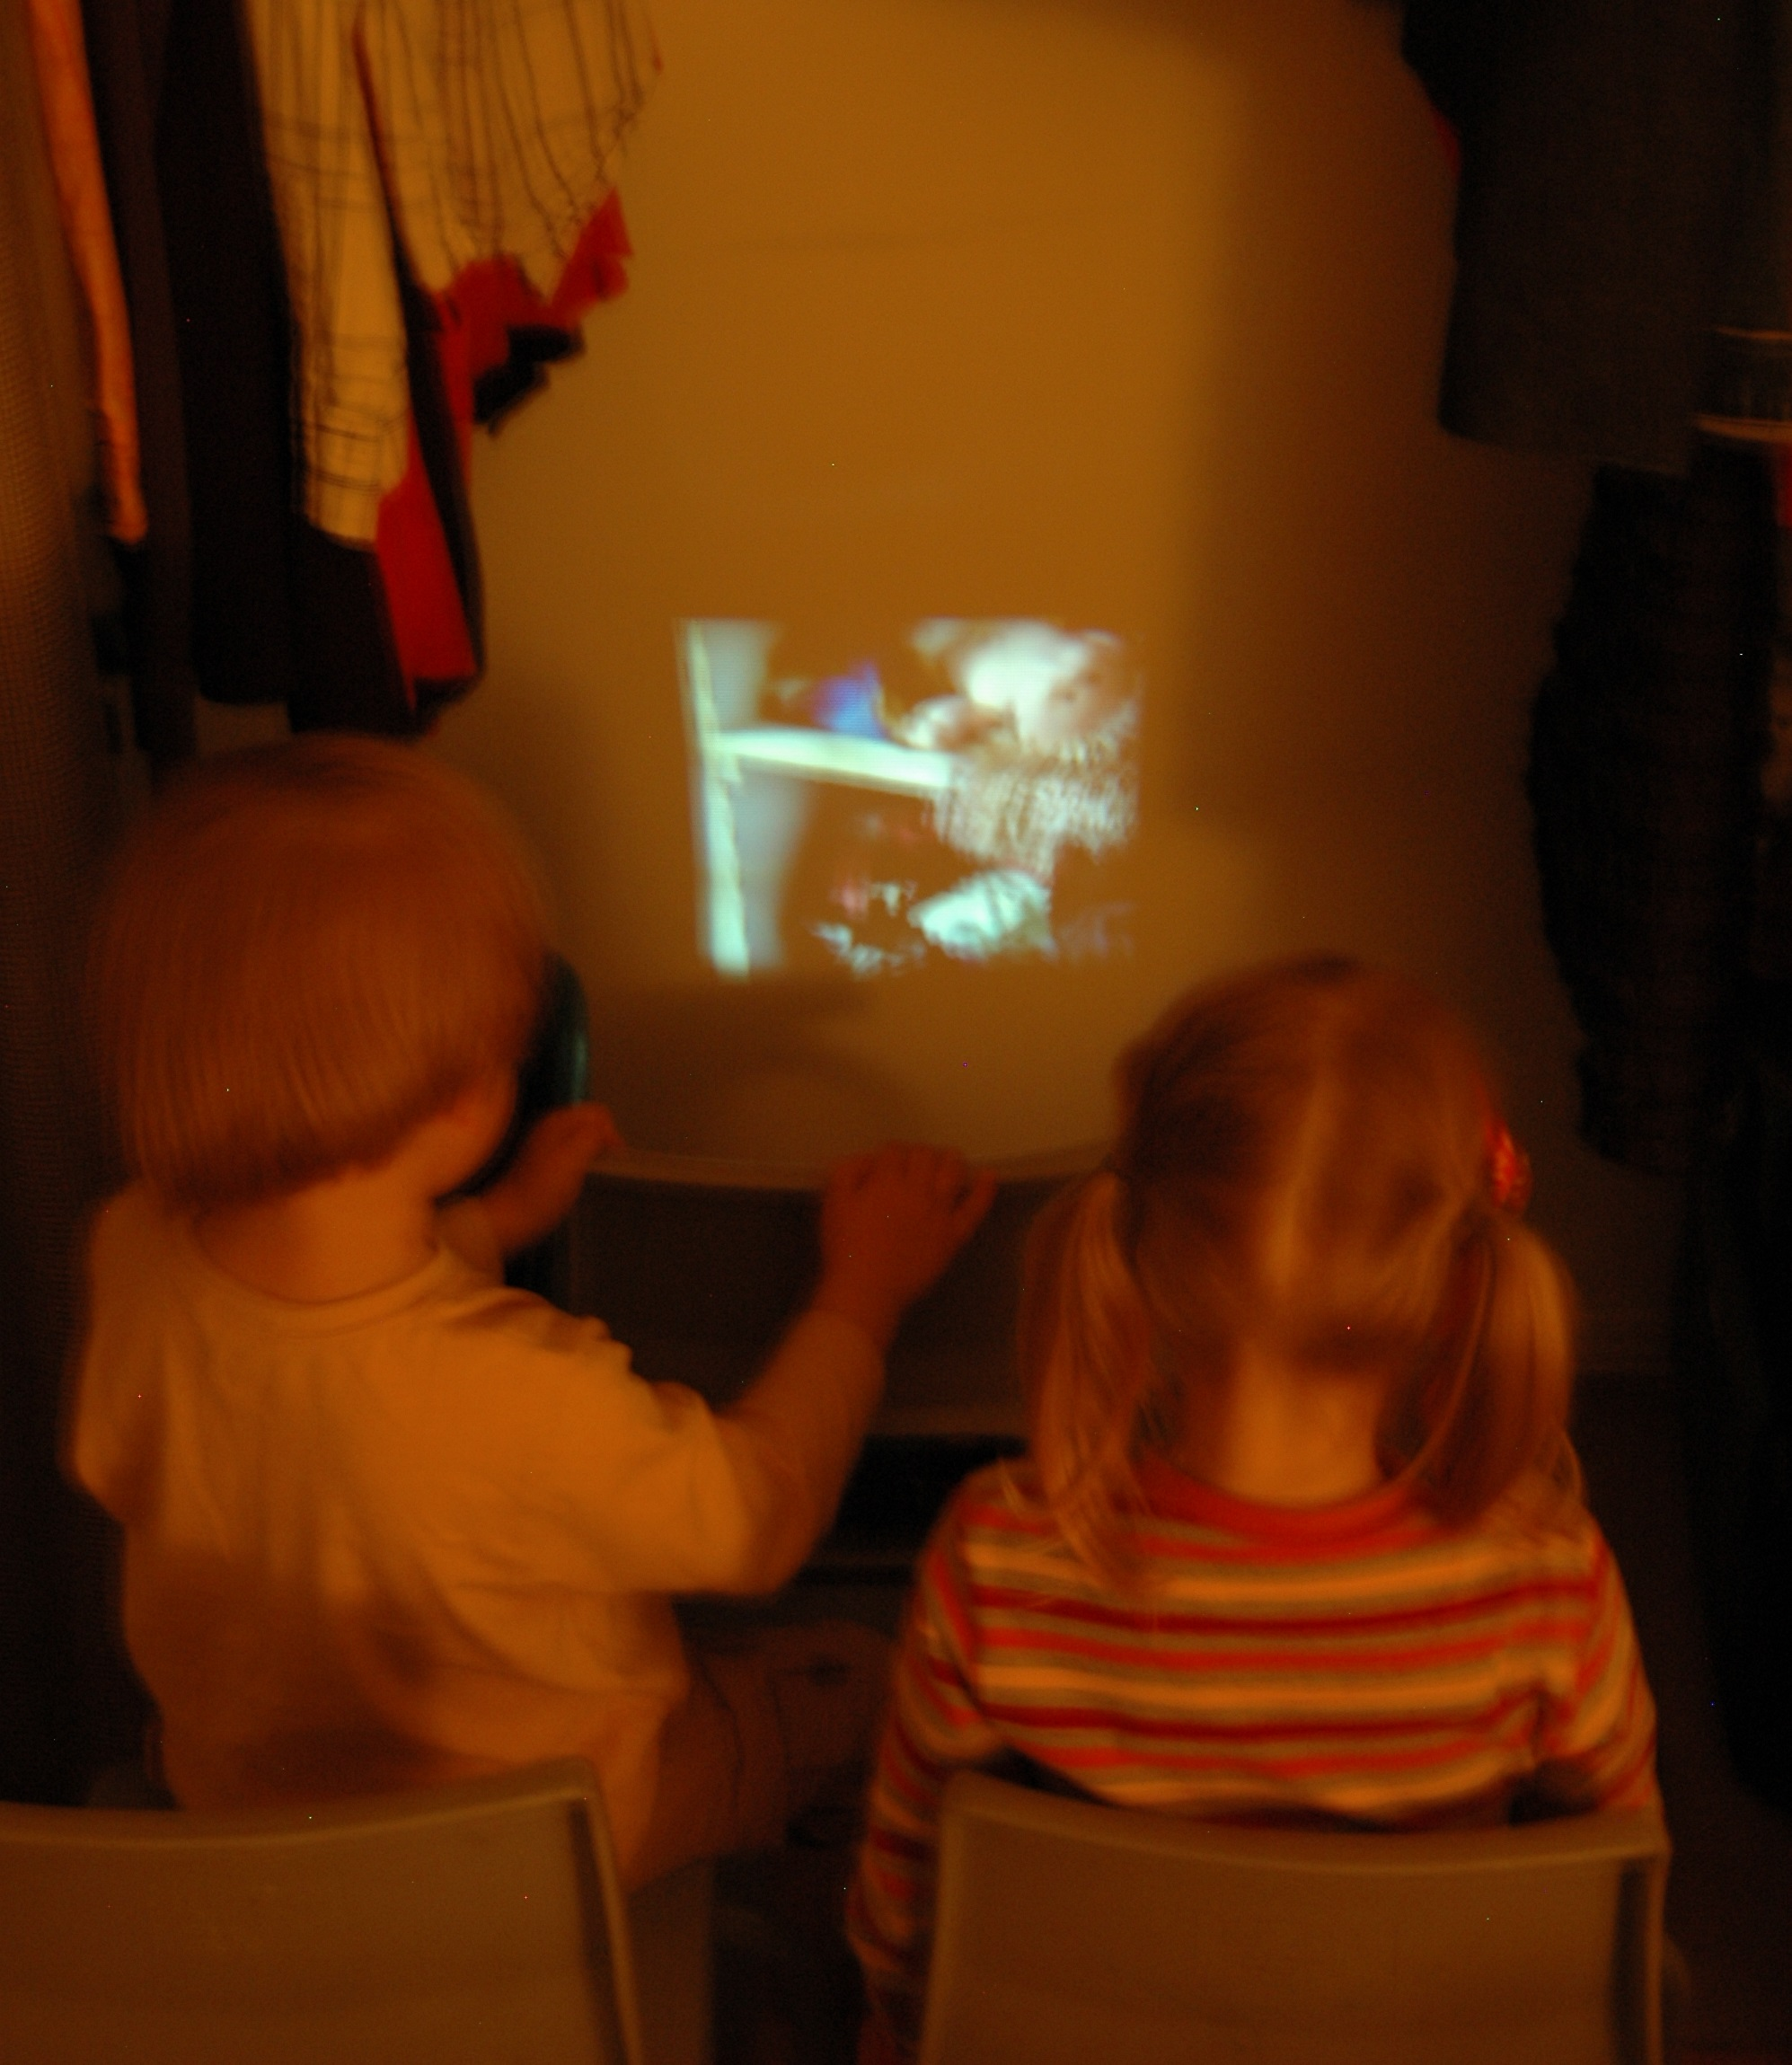 Playskool ShowCam Projection in the Closet